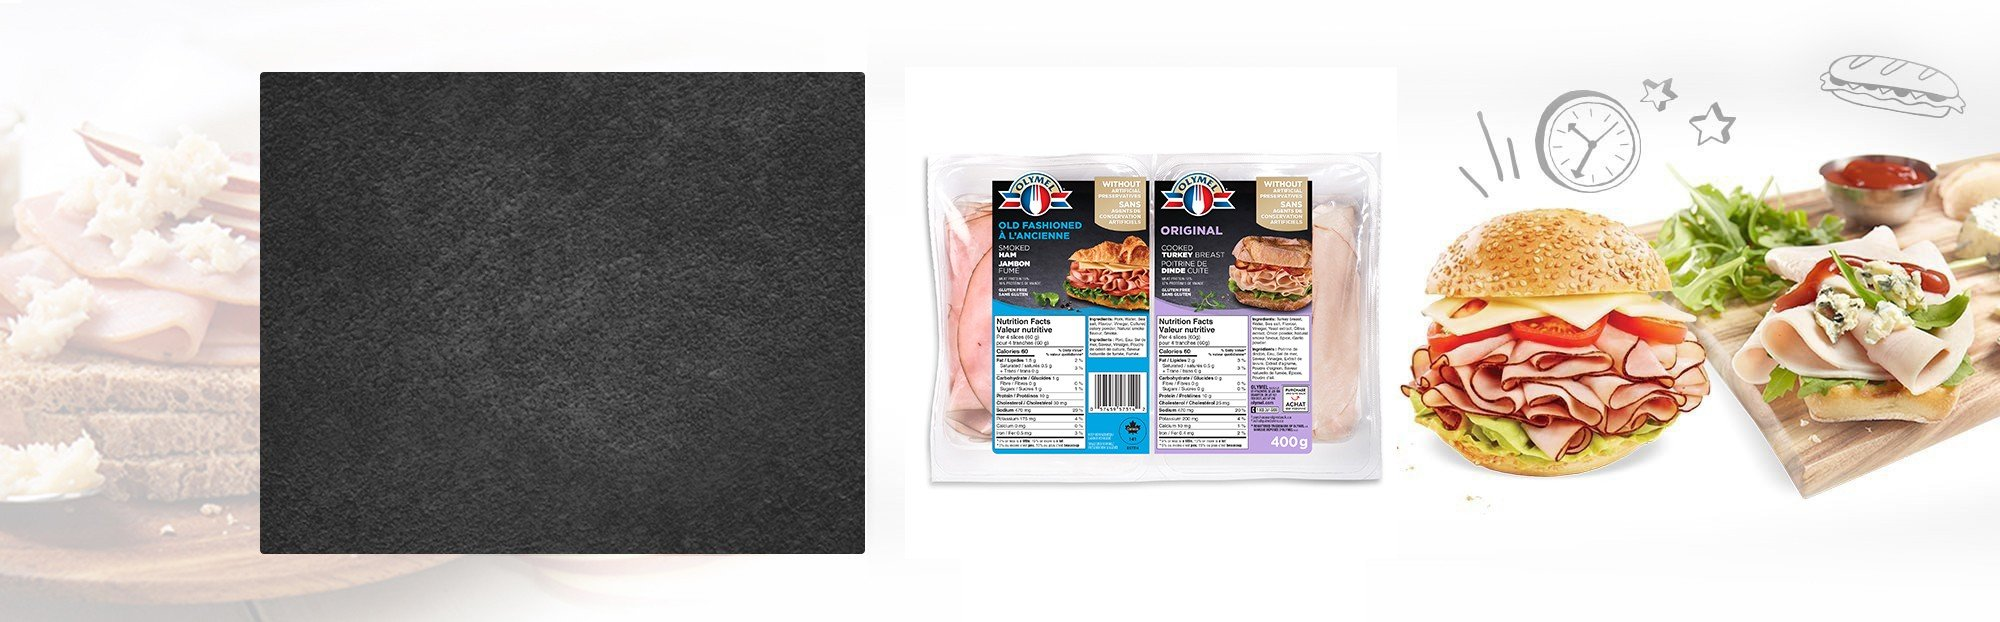 Old Fashioned Smoked Ham & Original Cooked Turkey Breast Duo-Pack